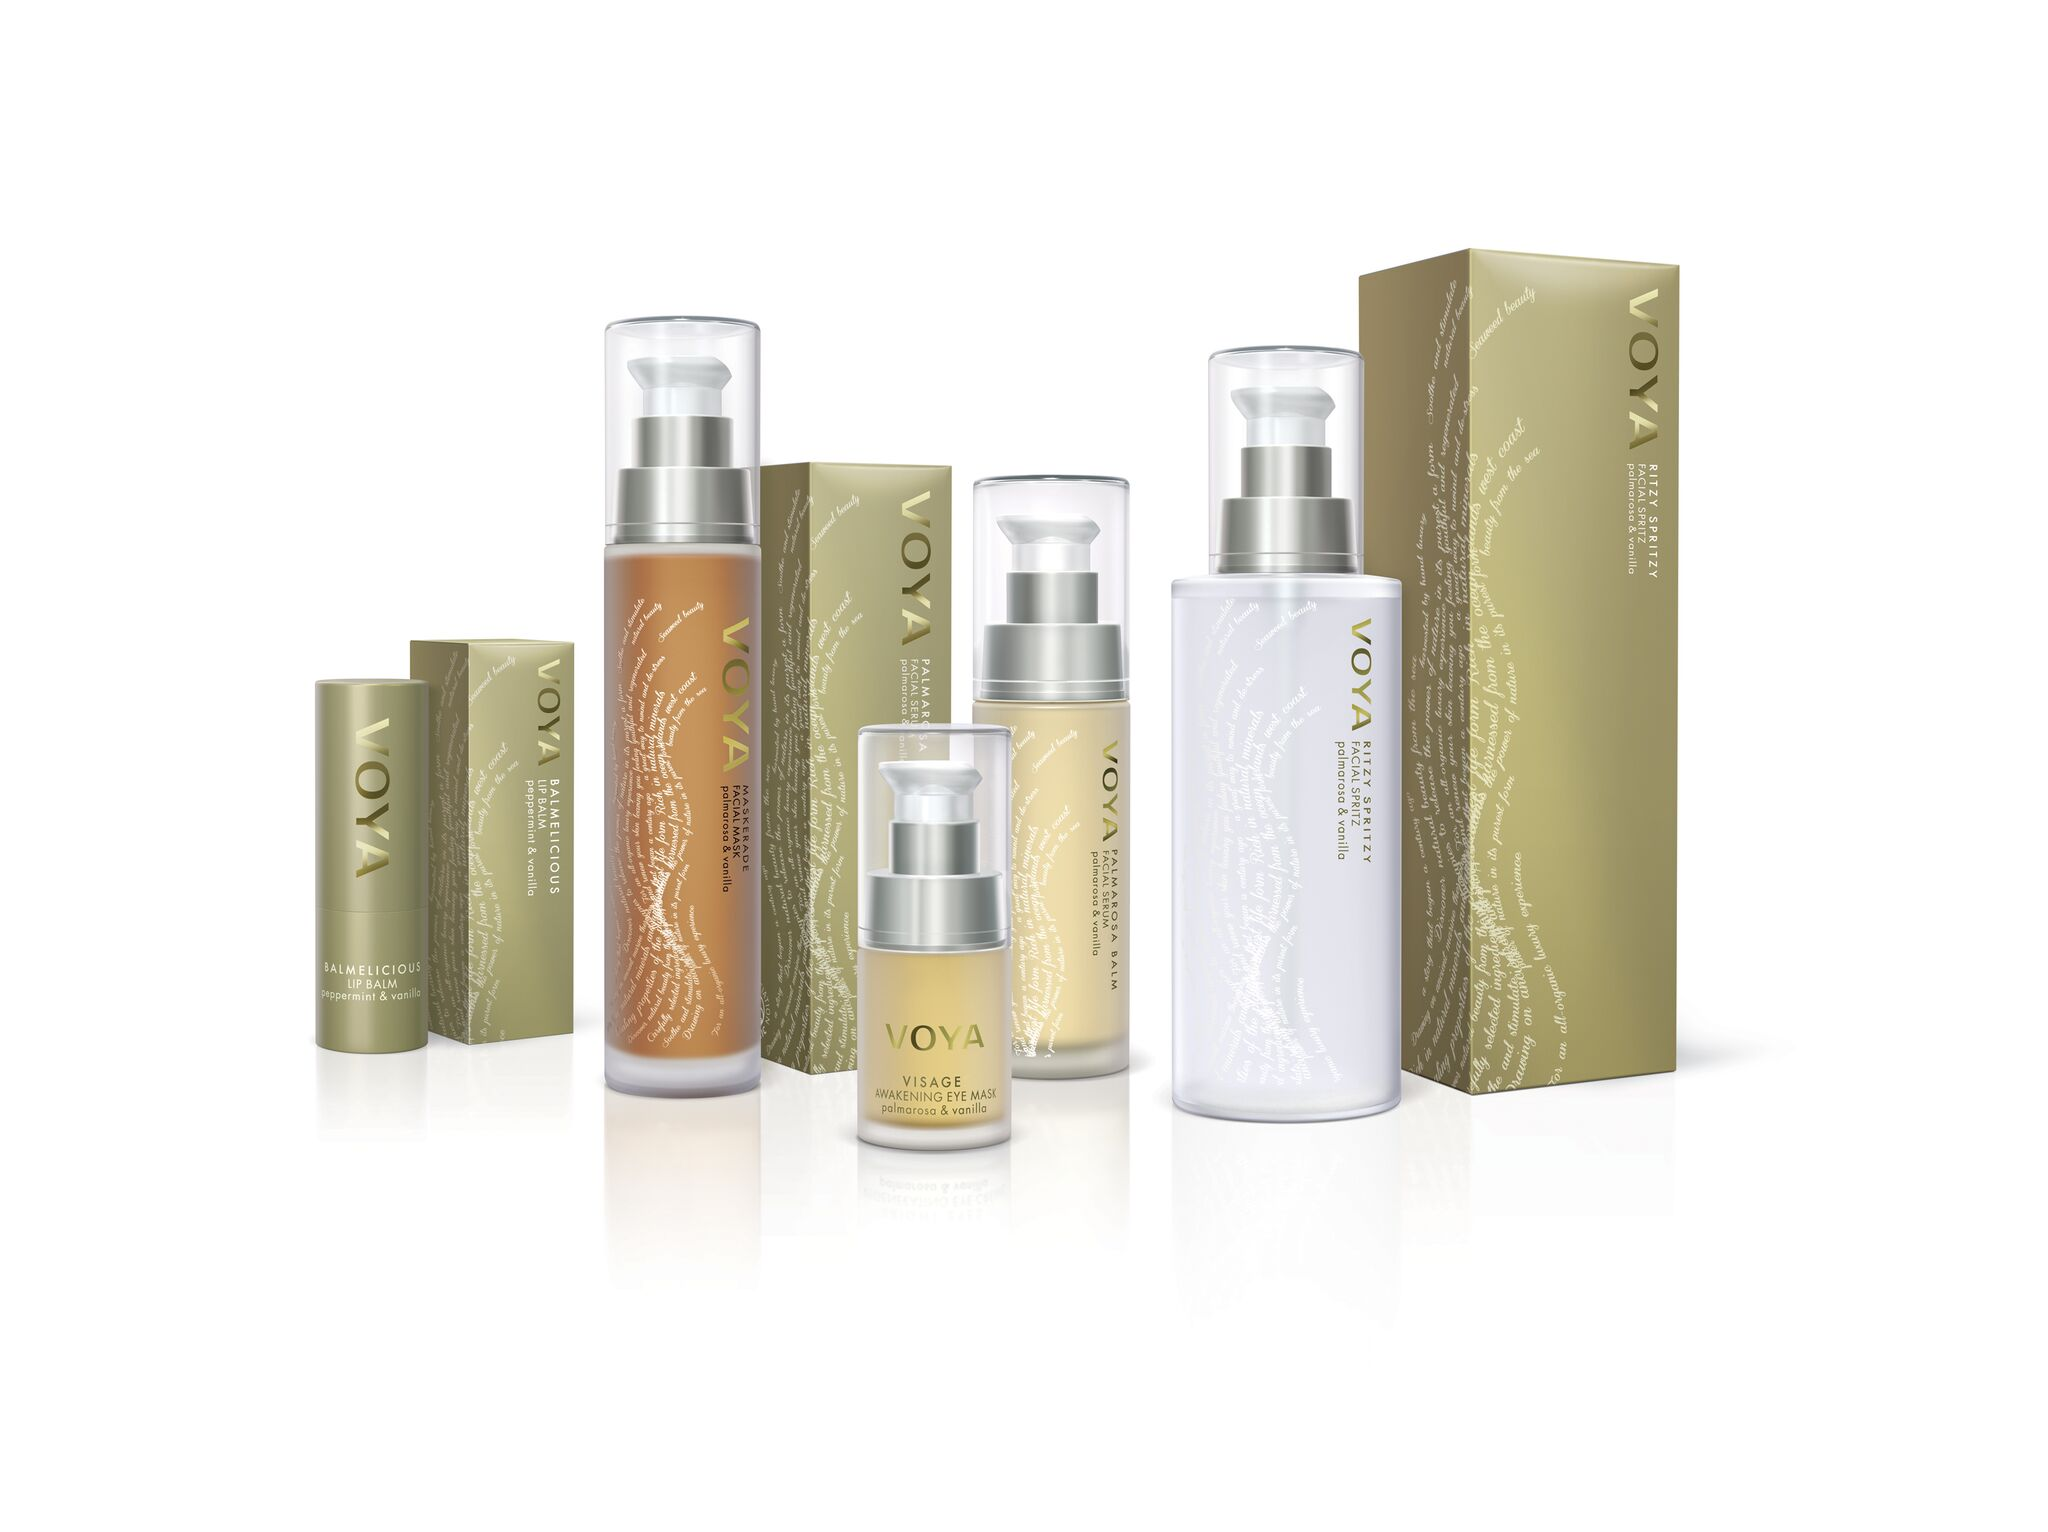 Voya facial products